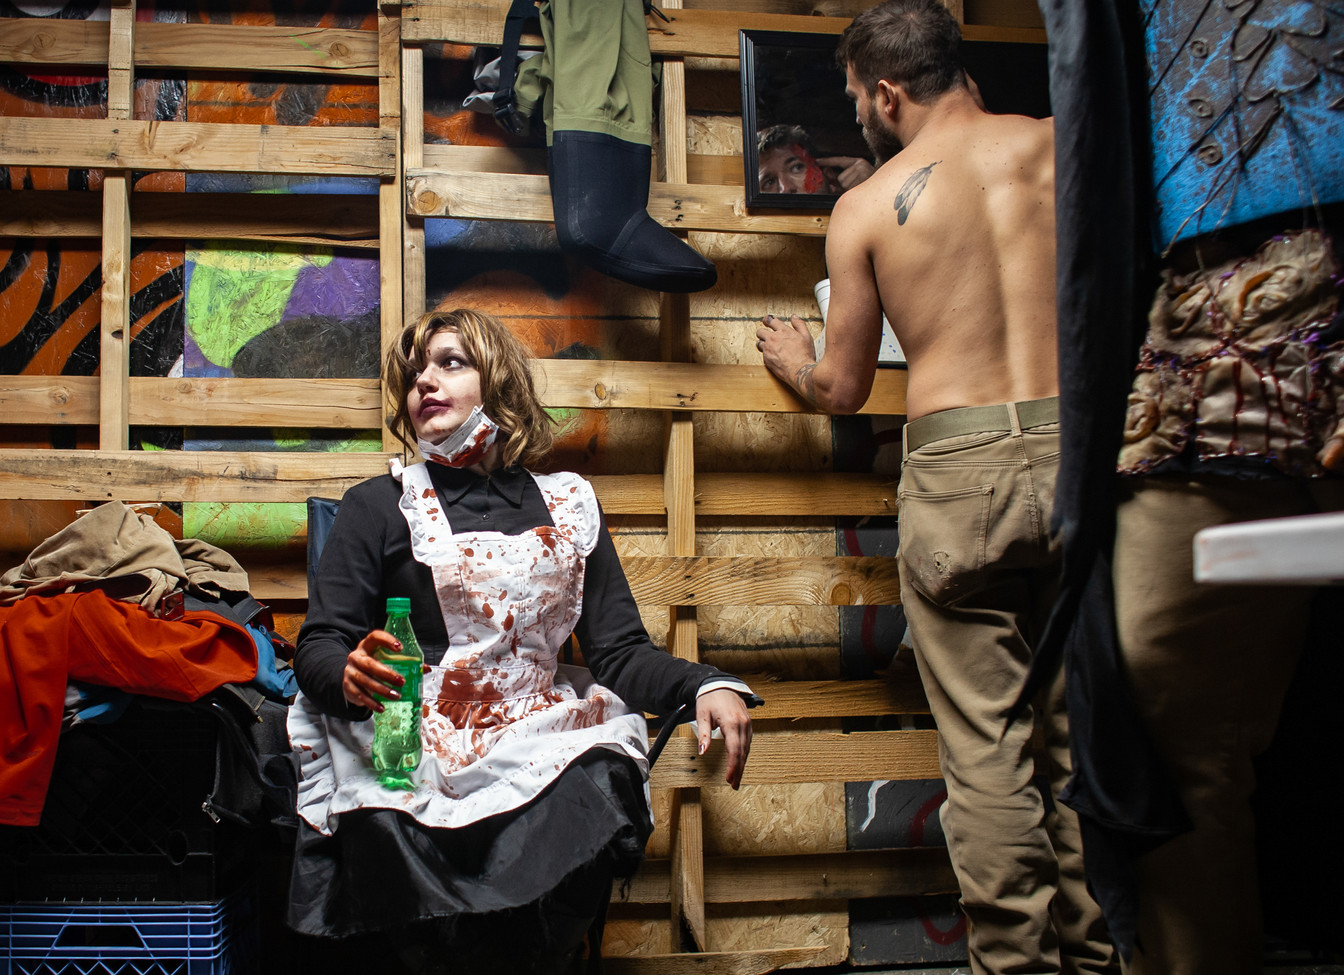 Missoula Haunted House scare-actress Max Randall, left, takes a break from makeup application while actor Bradley Lykins hurries to make changes to his makeup in the haunt's 'green room.' Lykins and his fellow haunters build Missoula's only haunted house from scratch each year, starting with an empty warehouse. A core group of about 20 designers and actors created this year's hellscape, which included a real river Styx, a functional boat, an airplane  crash and chainsaws.